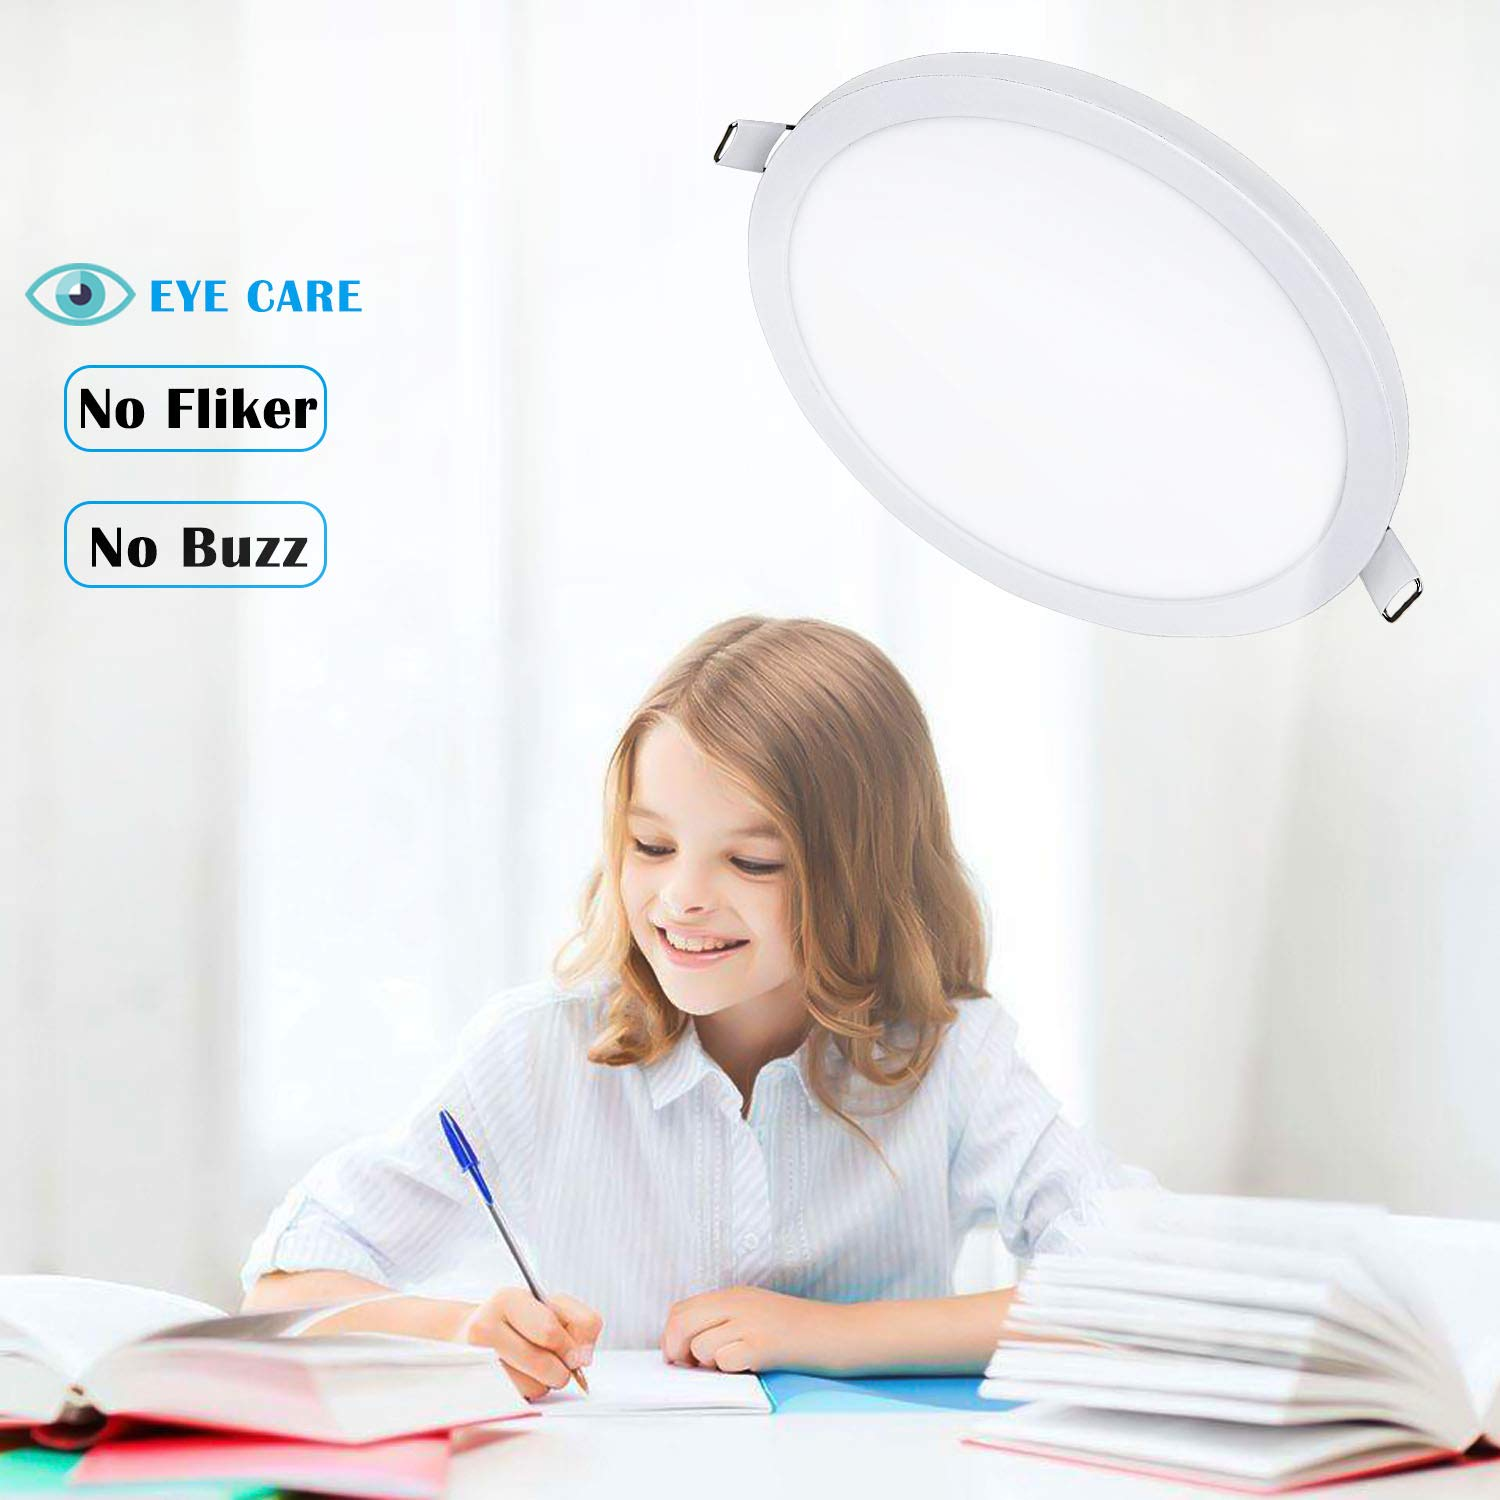 1000lm Retrofit Recessed Lighting Fixture 5000K Daylight 12W Ultra-Thin Panel Light with Driver AceLite 5//6 inch Recessed Ceiling LED Downlight Dimmable 10-Pack